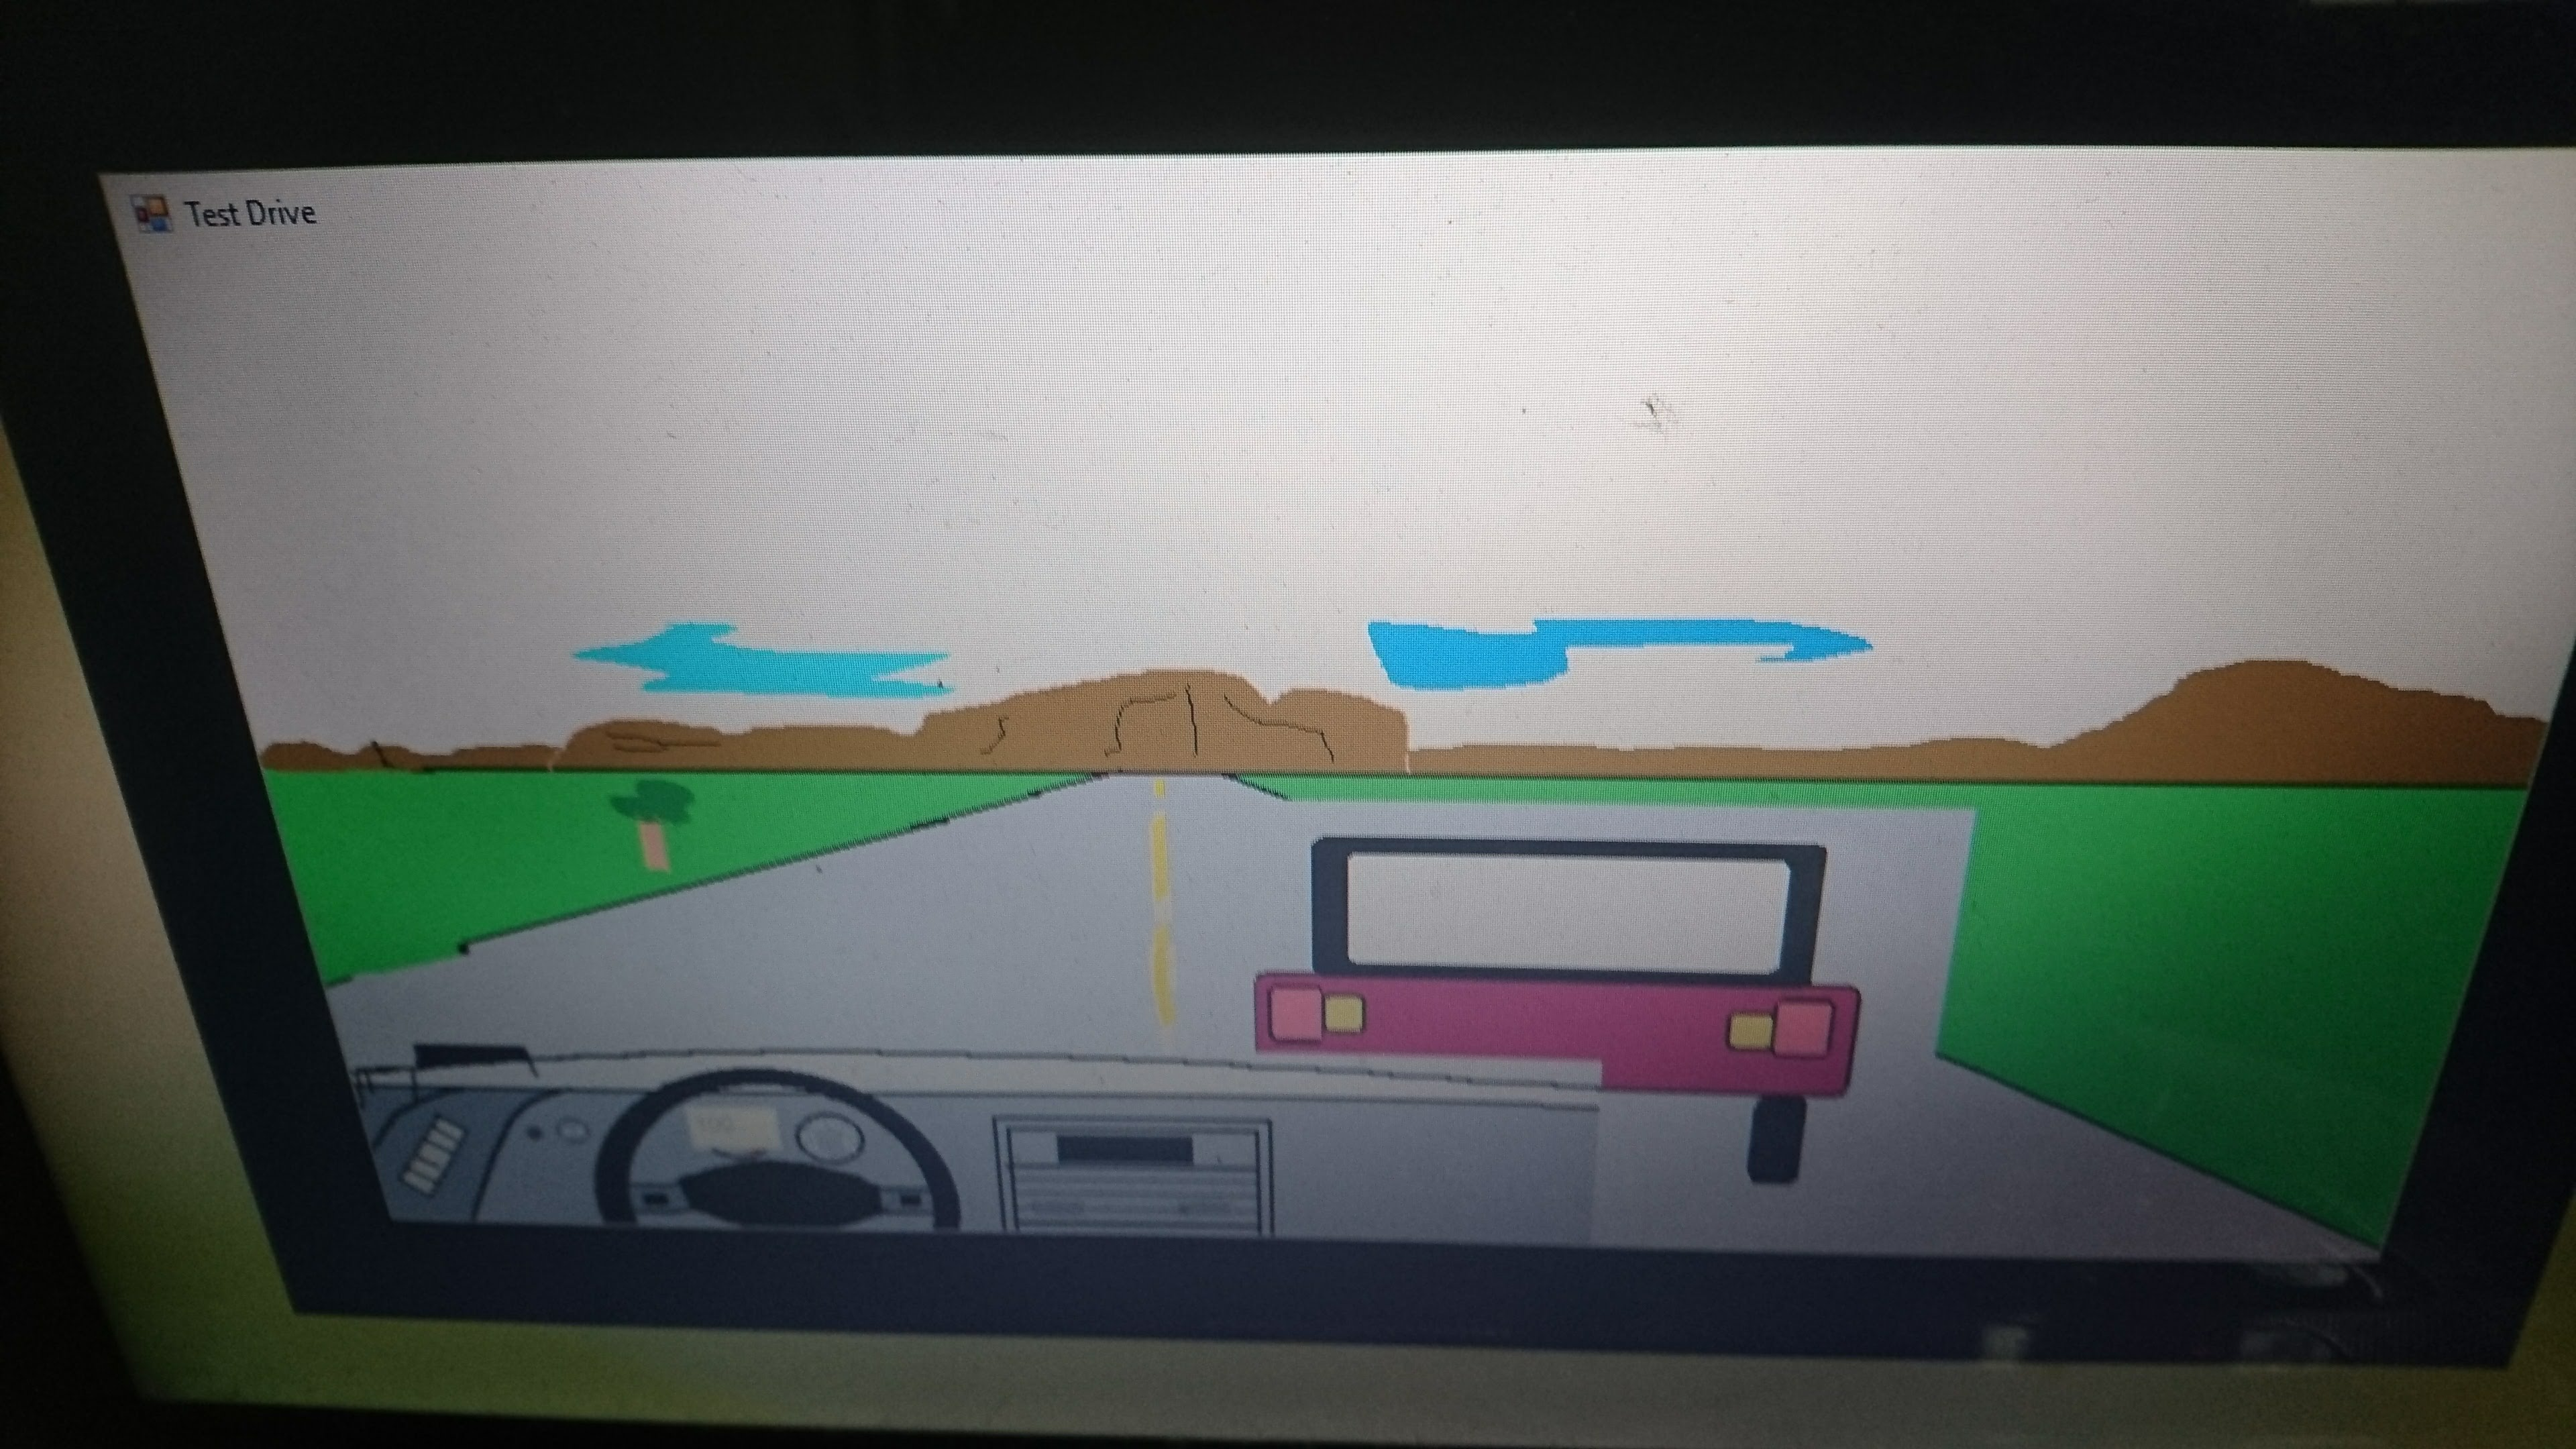 Test Drive video on the Simulation and Game showing driving and overtaking . The code is available at http://codeengineeeringcomputerworks.com . Programmed and Published by Prof Dr Chan Junt Hoong FIET FIEEE BEng CEng .